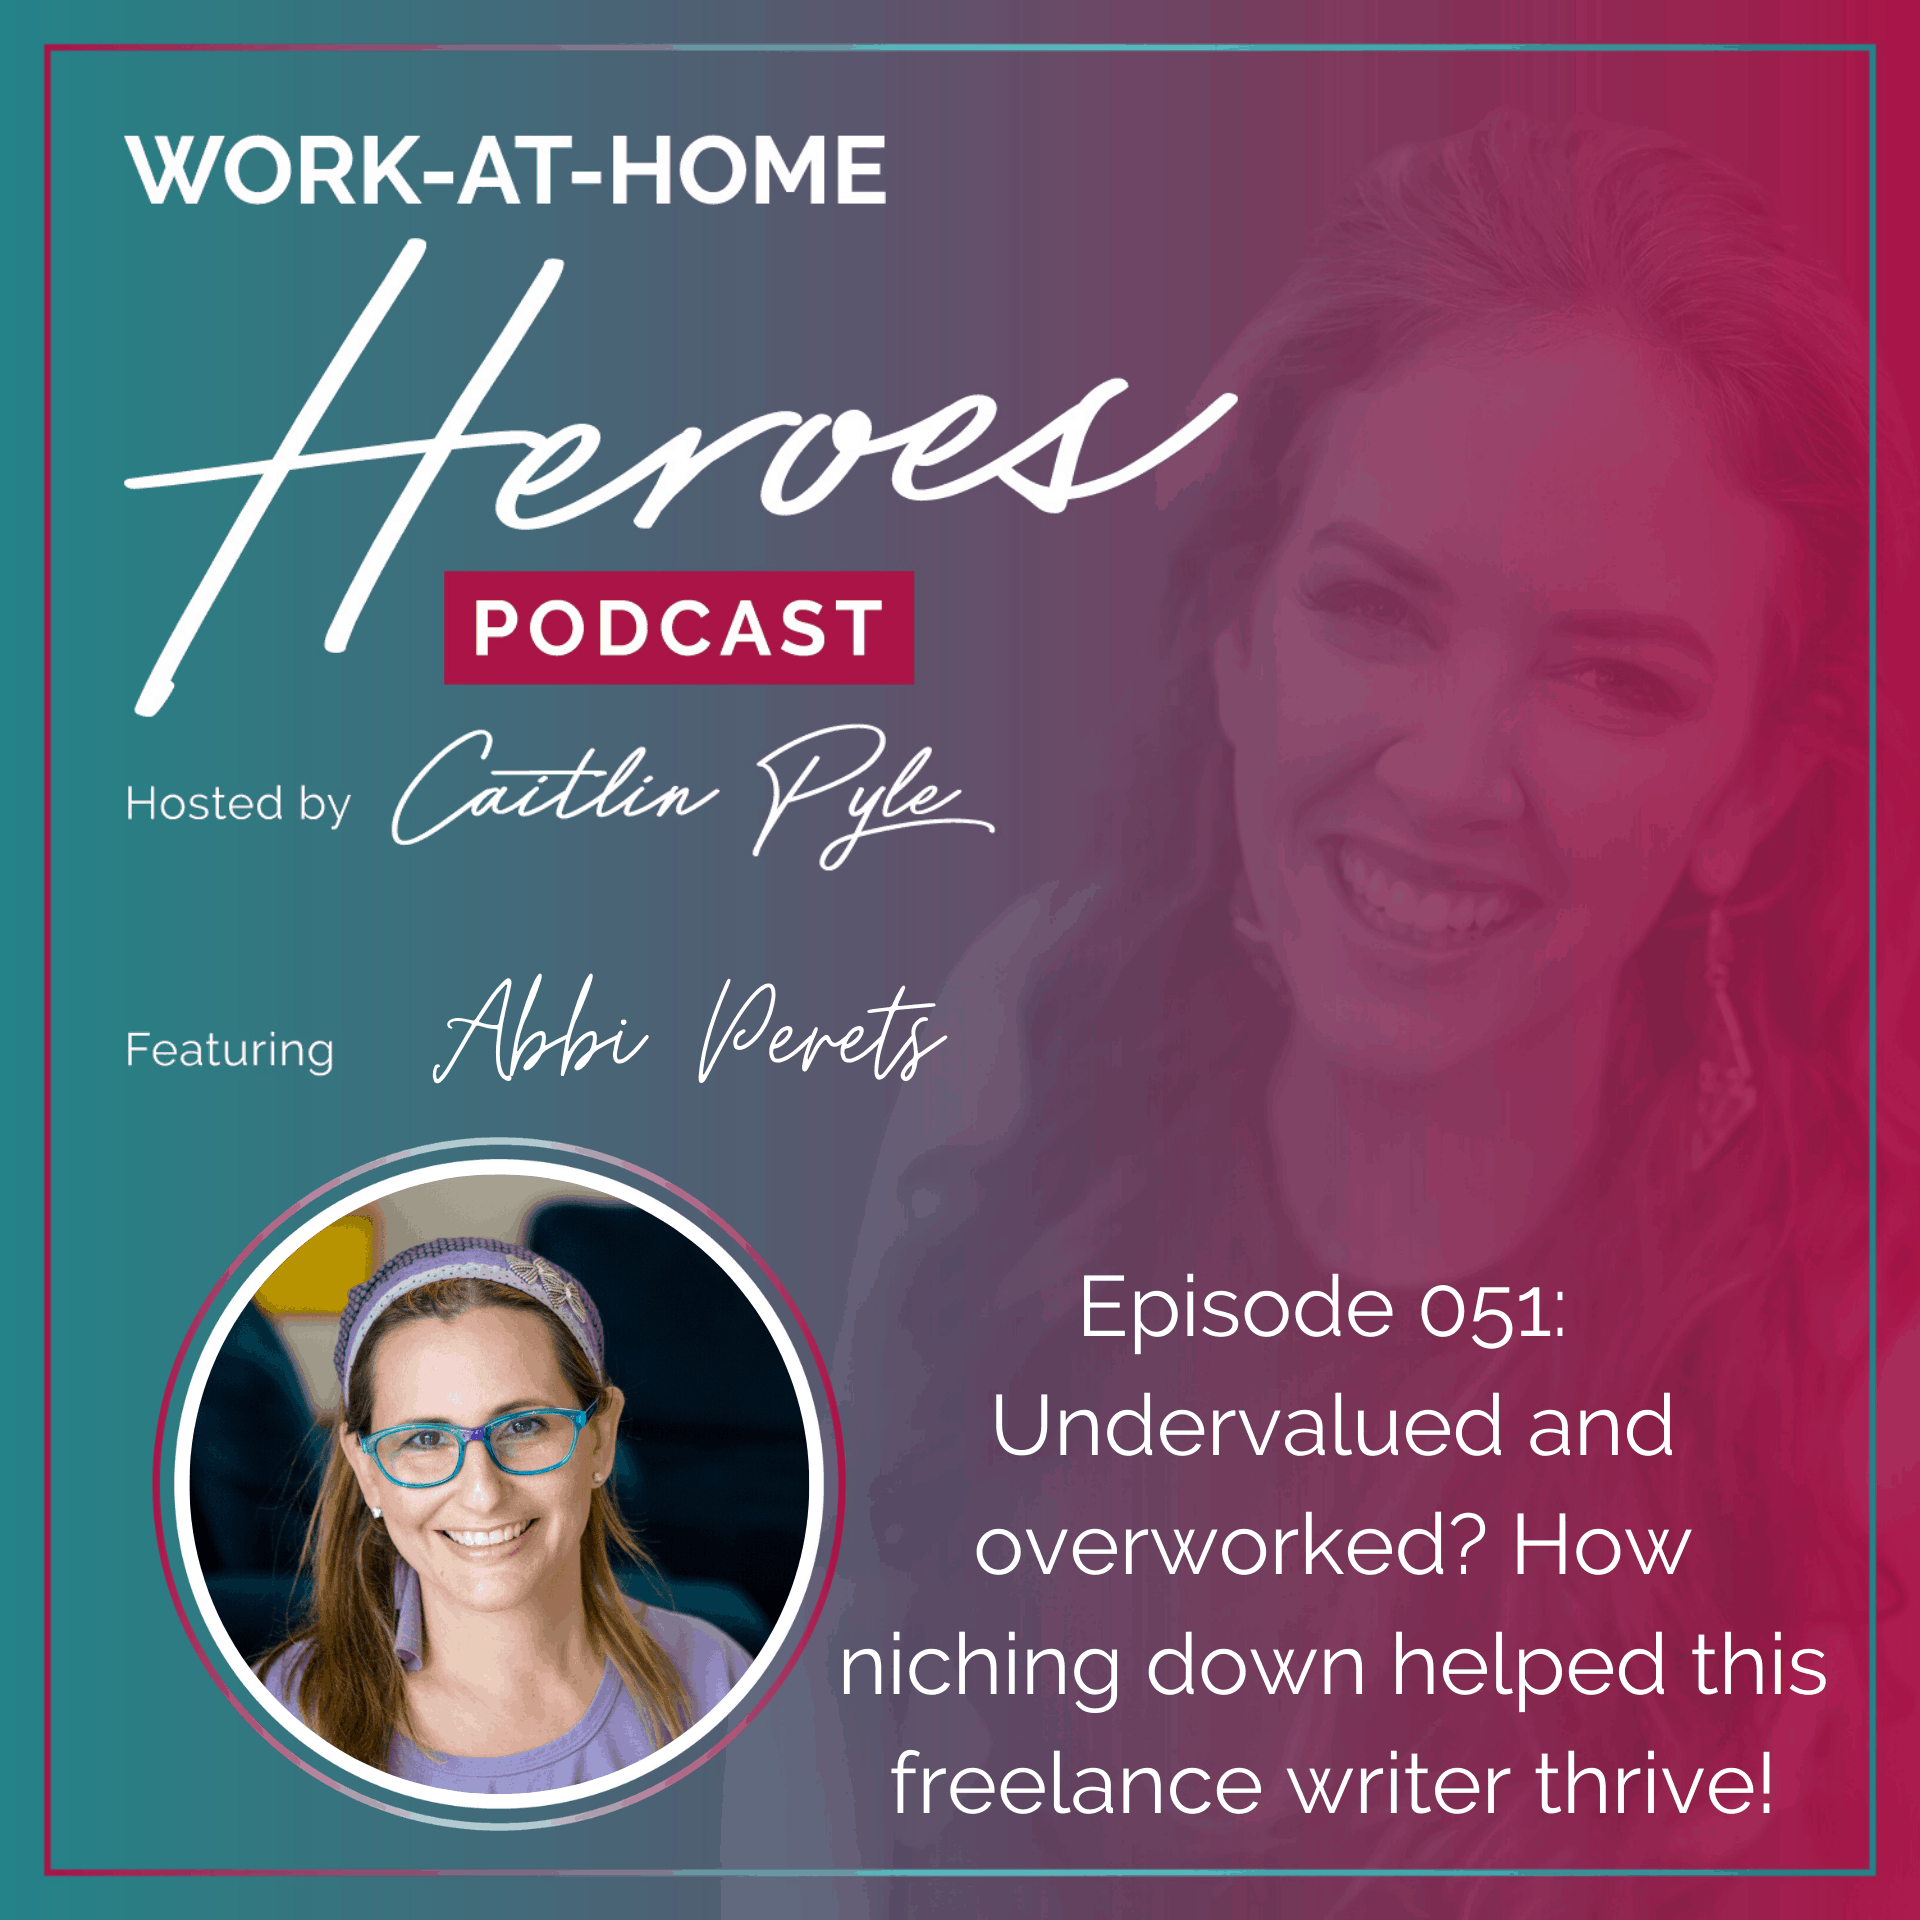 abbi perets Undervalued and overworked? How niching down helped this freelance writer thrive